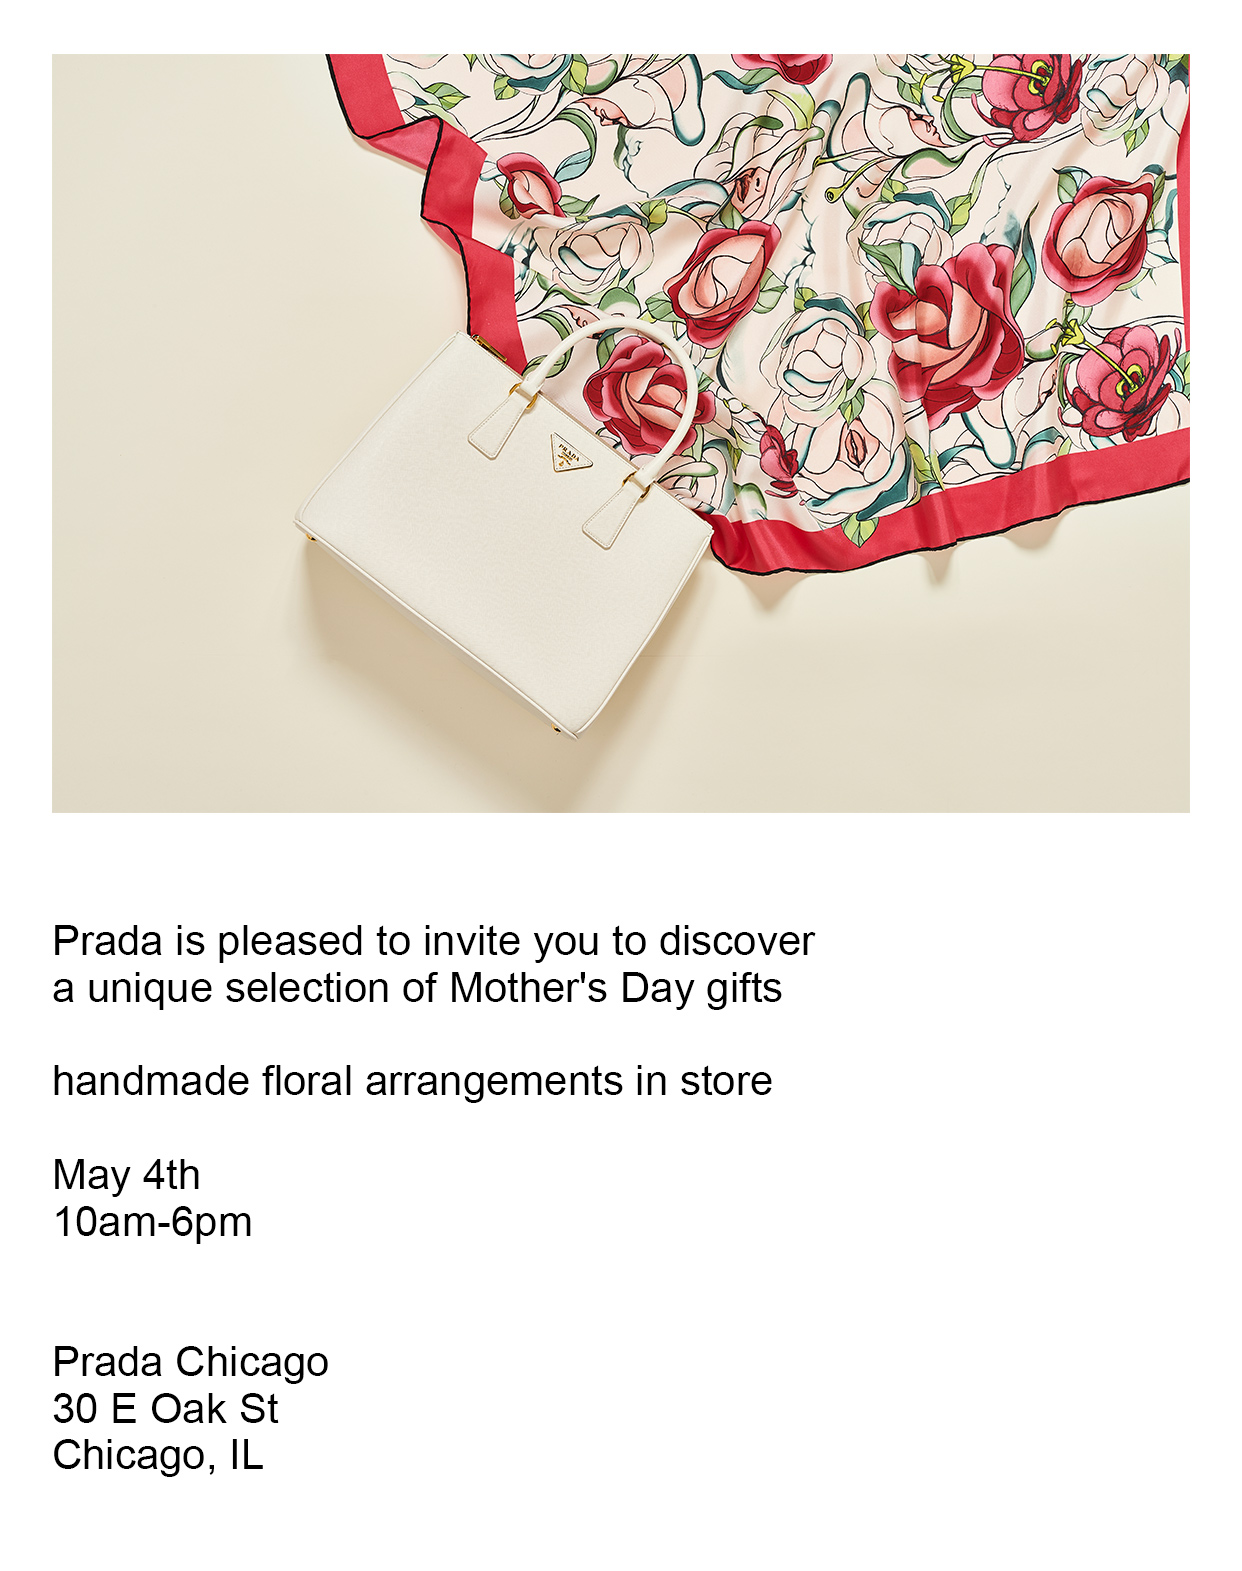 prada in Chicago